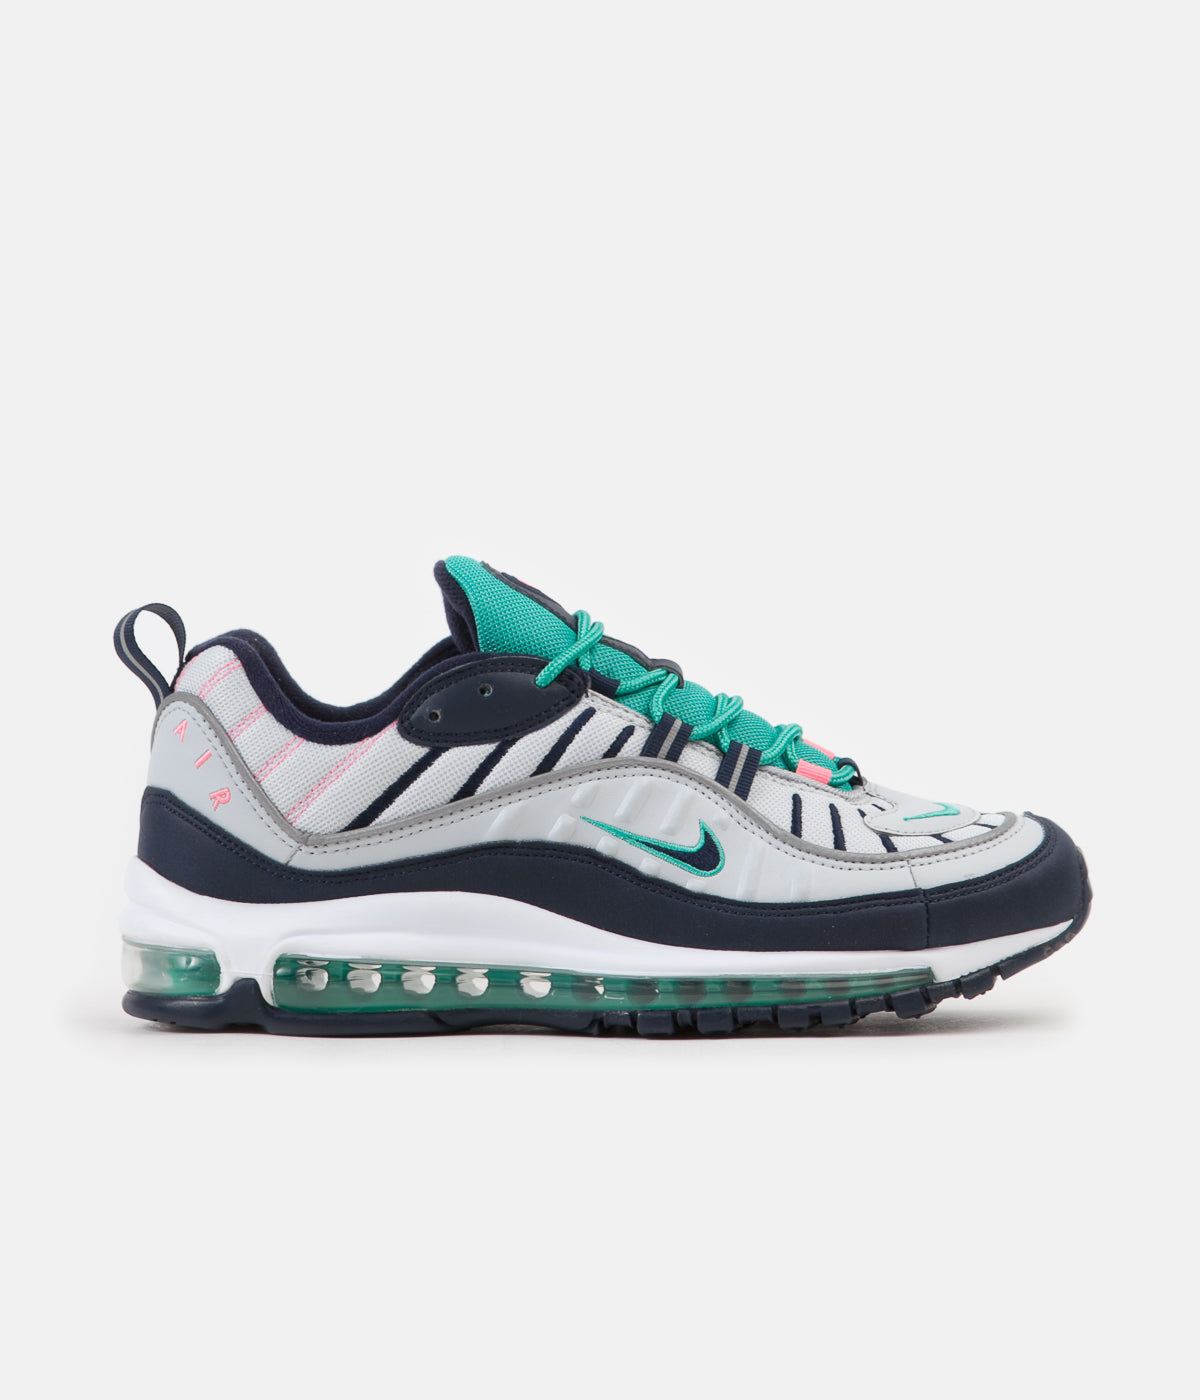 735850fa54 ... Nike Air Max 98 Shoes - Pure Platinum / Obsidian - Kinetic Green ...